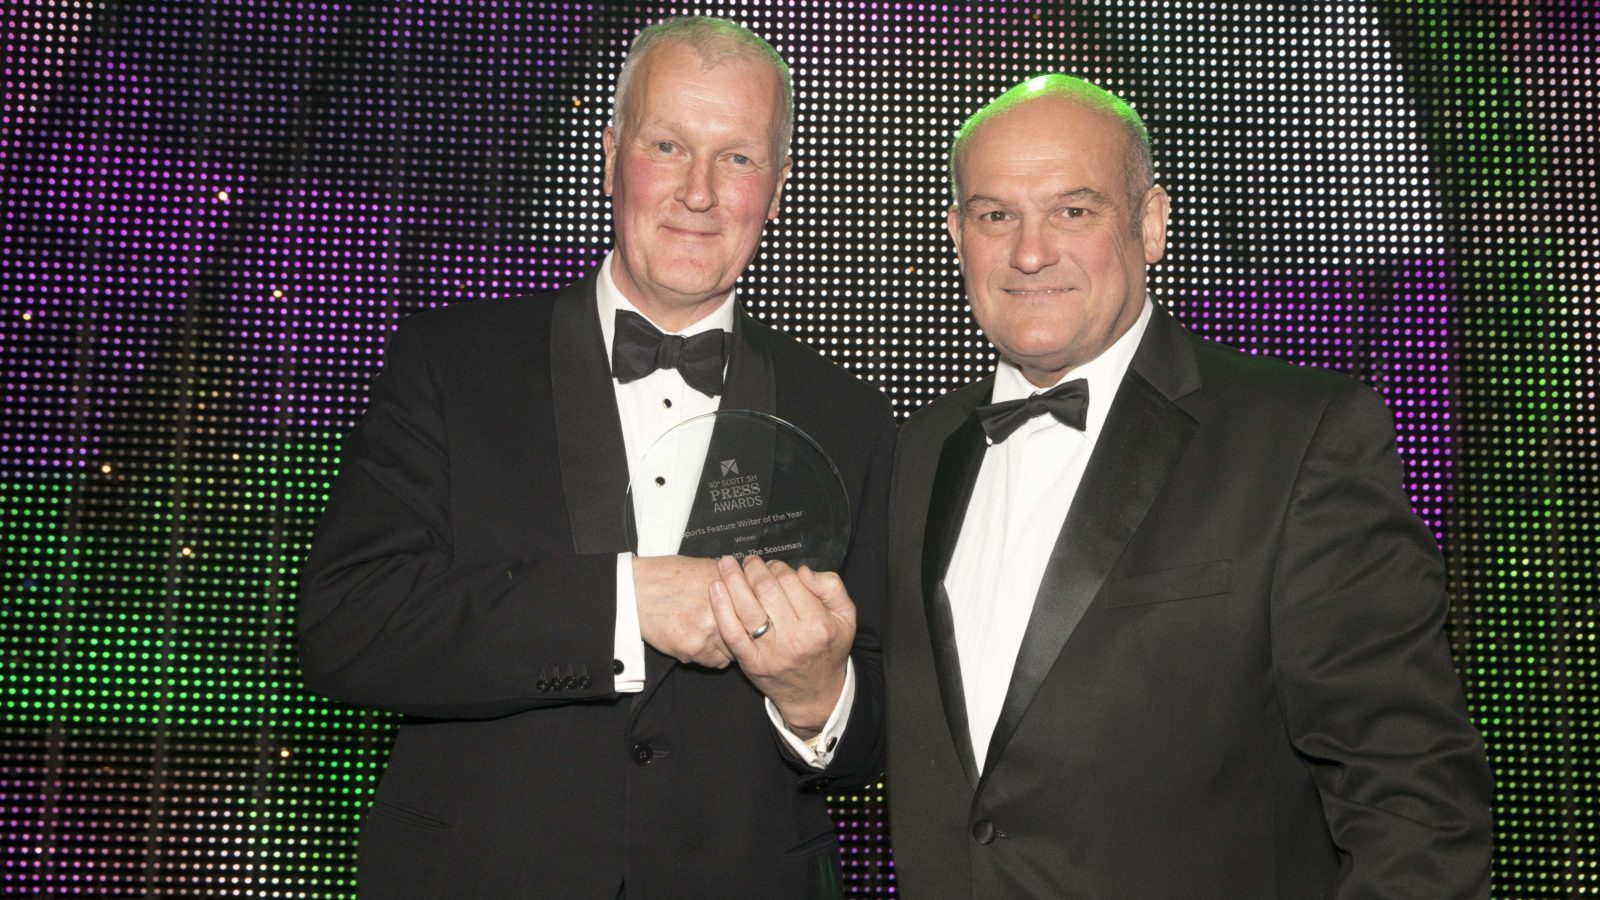 Sports Feature Writer of the Year Winner Aidan Smith, The Scotsman